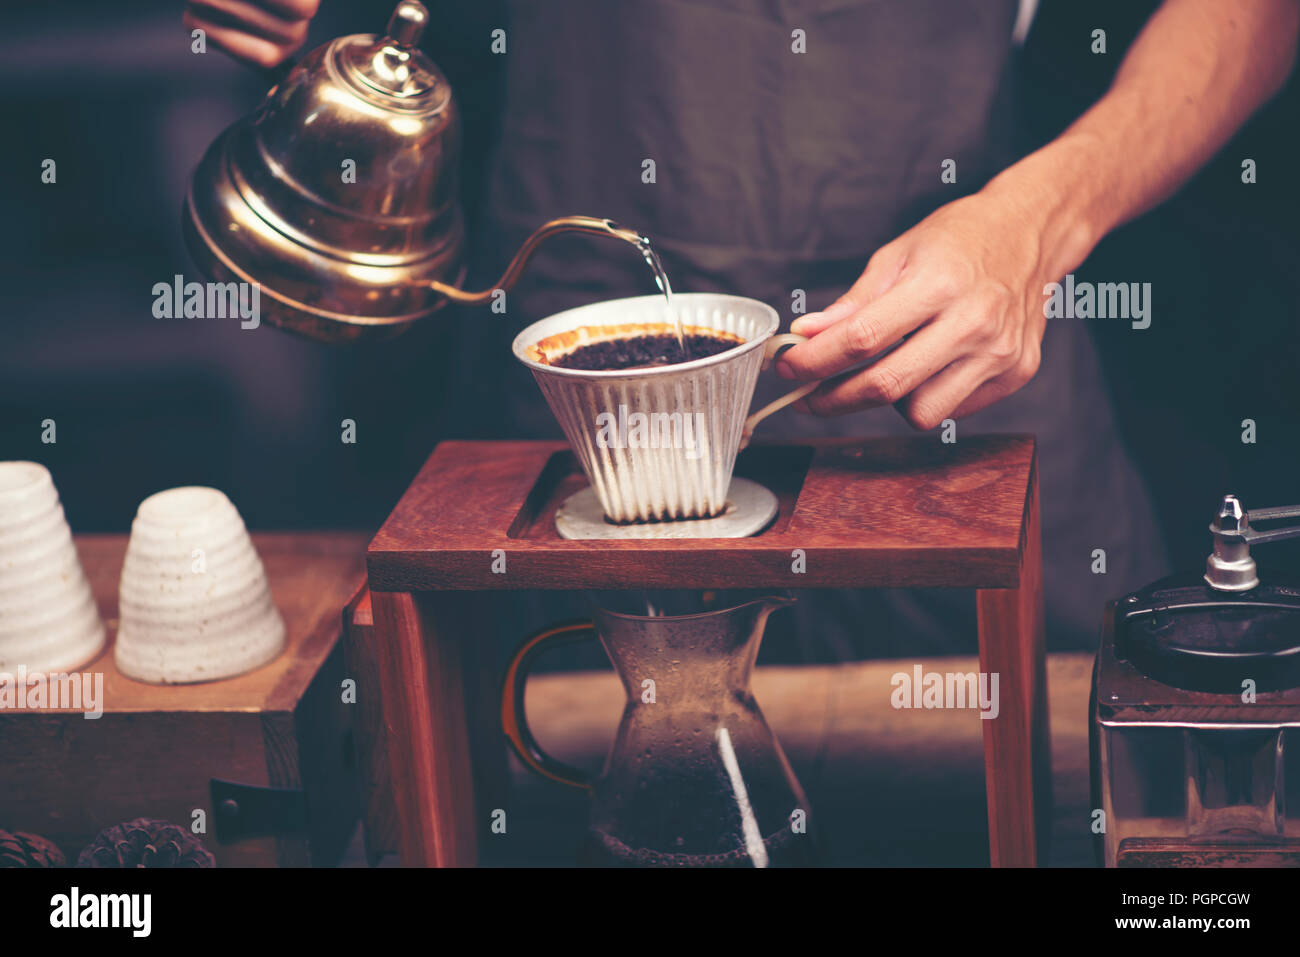 Drip brewing, filtered coffee, or pour-over is a method which involves pouring water over roasted, ground coffee beans contained in a filter. - Stock Image